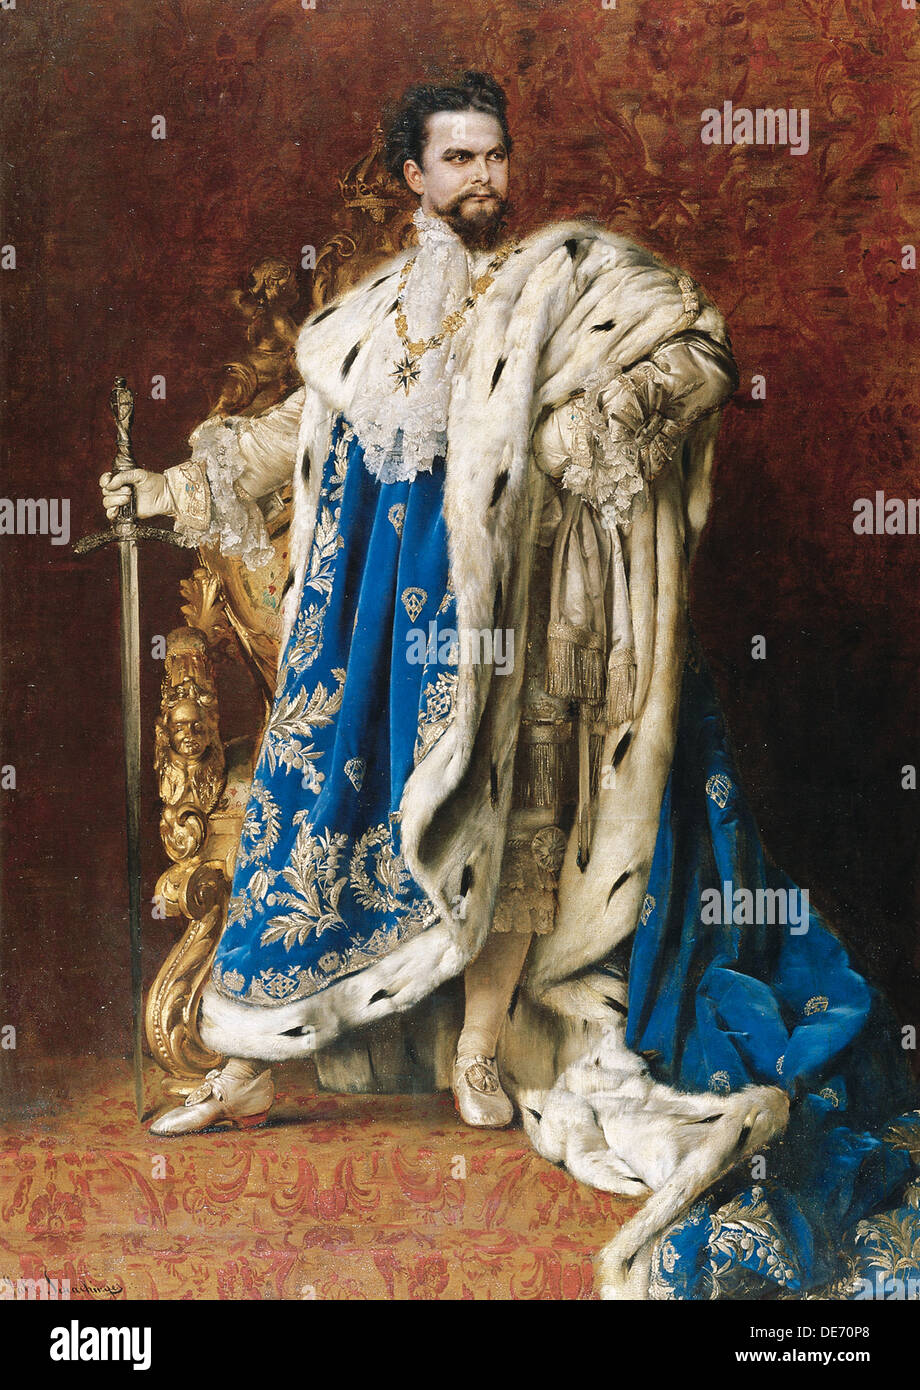 Ludwig II as the Grand Master of the Order of the Knights of St George, 1887. Artist: Schachinger, Gabriel (1850-1913) - Stock Image